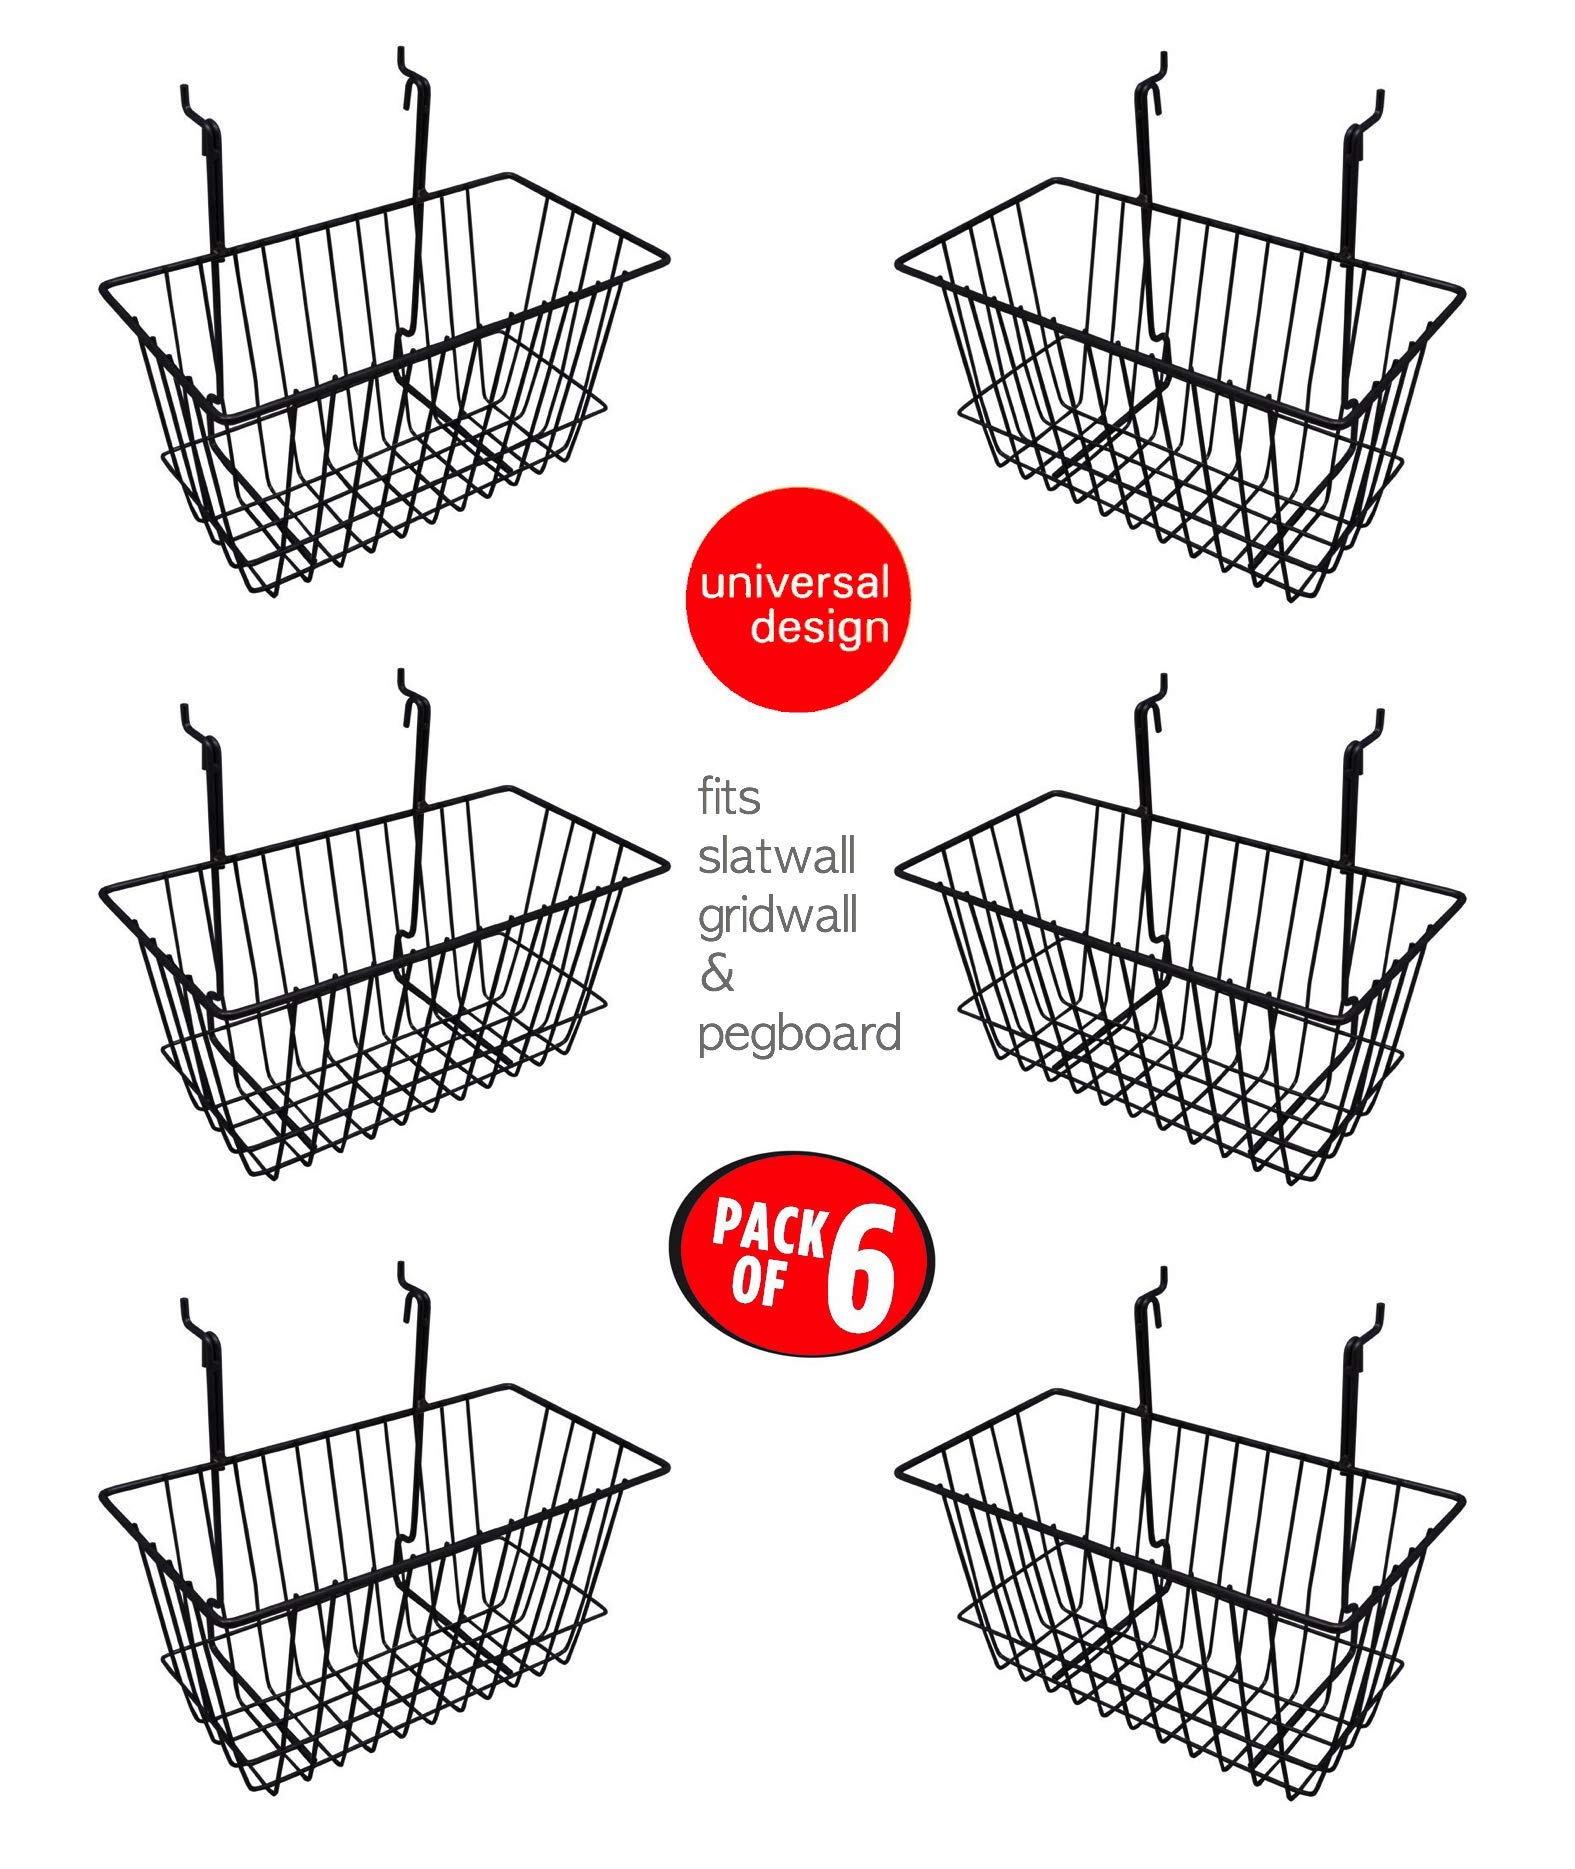 Only Hangers Small Wire Storage Baskets for Gridwall, Slatwall and Pegboard - Black Finish - Dimensions: 12'' x 6'' x 6'' Deep - Economically Sold in a Set of 6 Baskets by Only Hangers (Image #1)